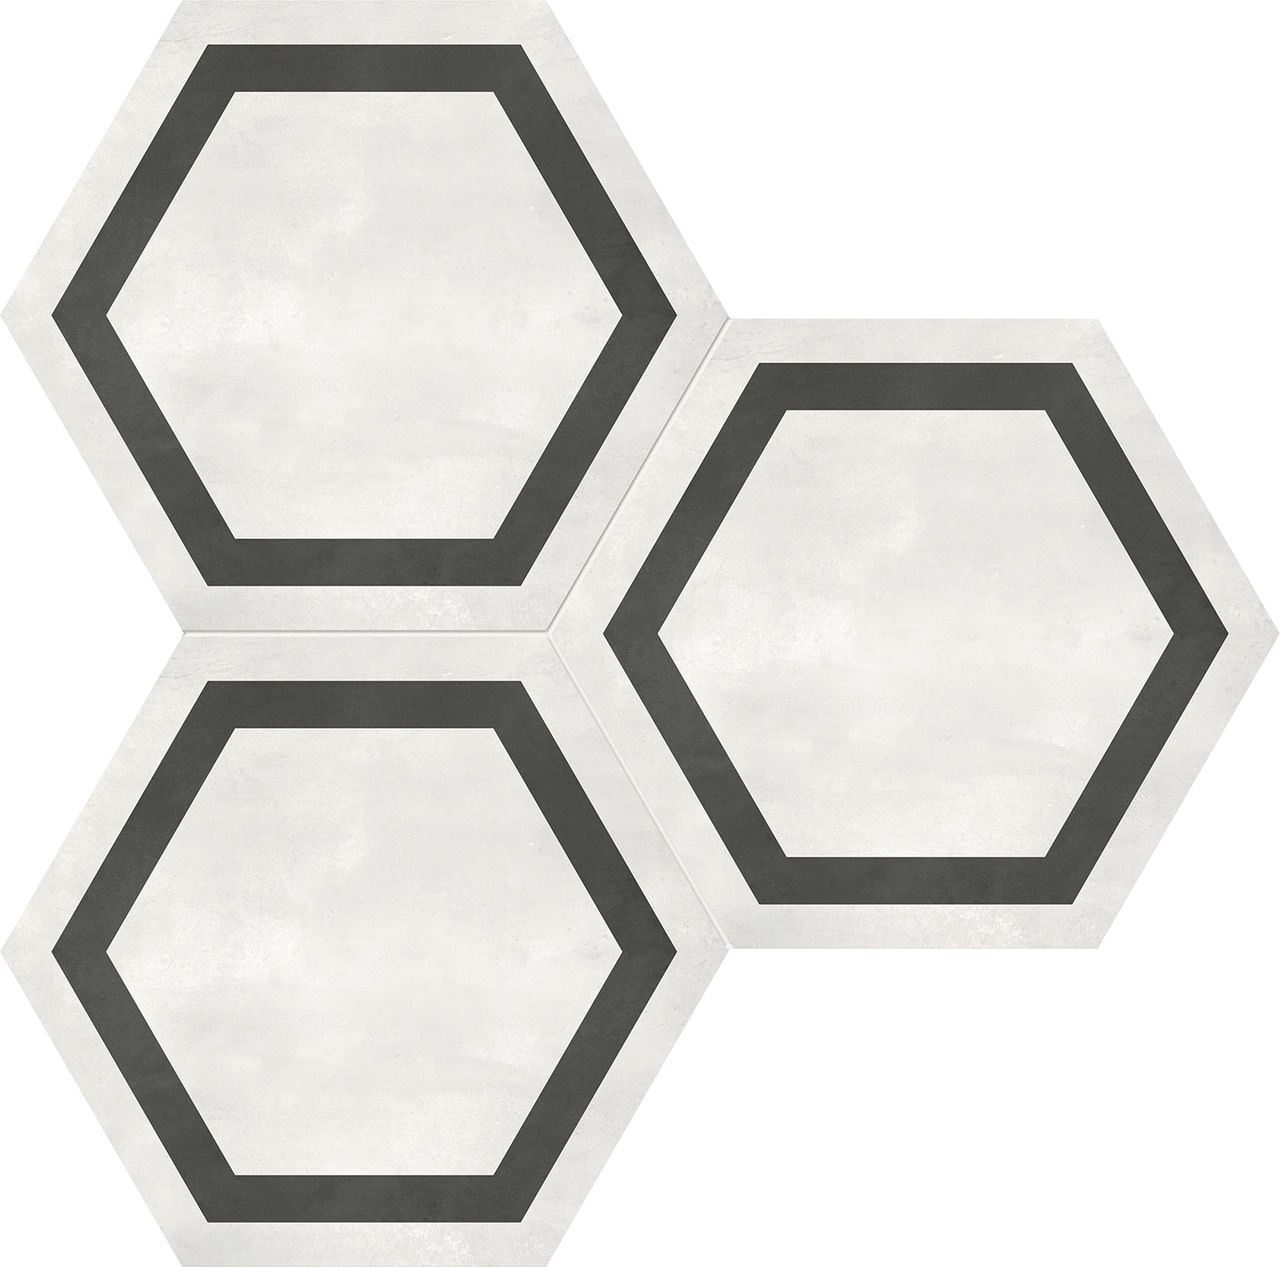 Complete Tile Collection 1 Square Mosaic In Crema Marfil Marble Polished Mi 111 S2 400 437 Stonemosaic Floortiles Wa Mosaic Marble Mosaic Mosaic Tiles